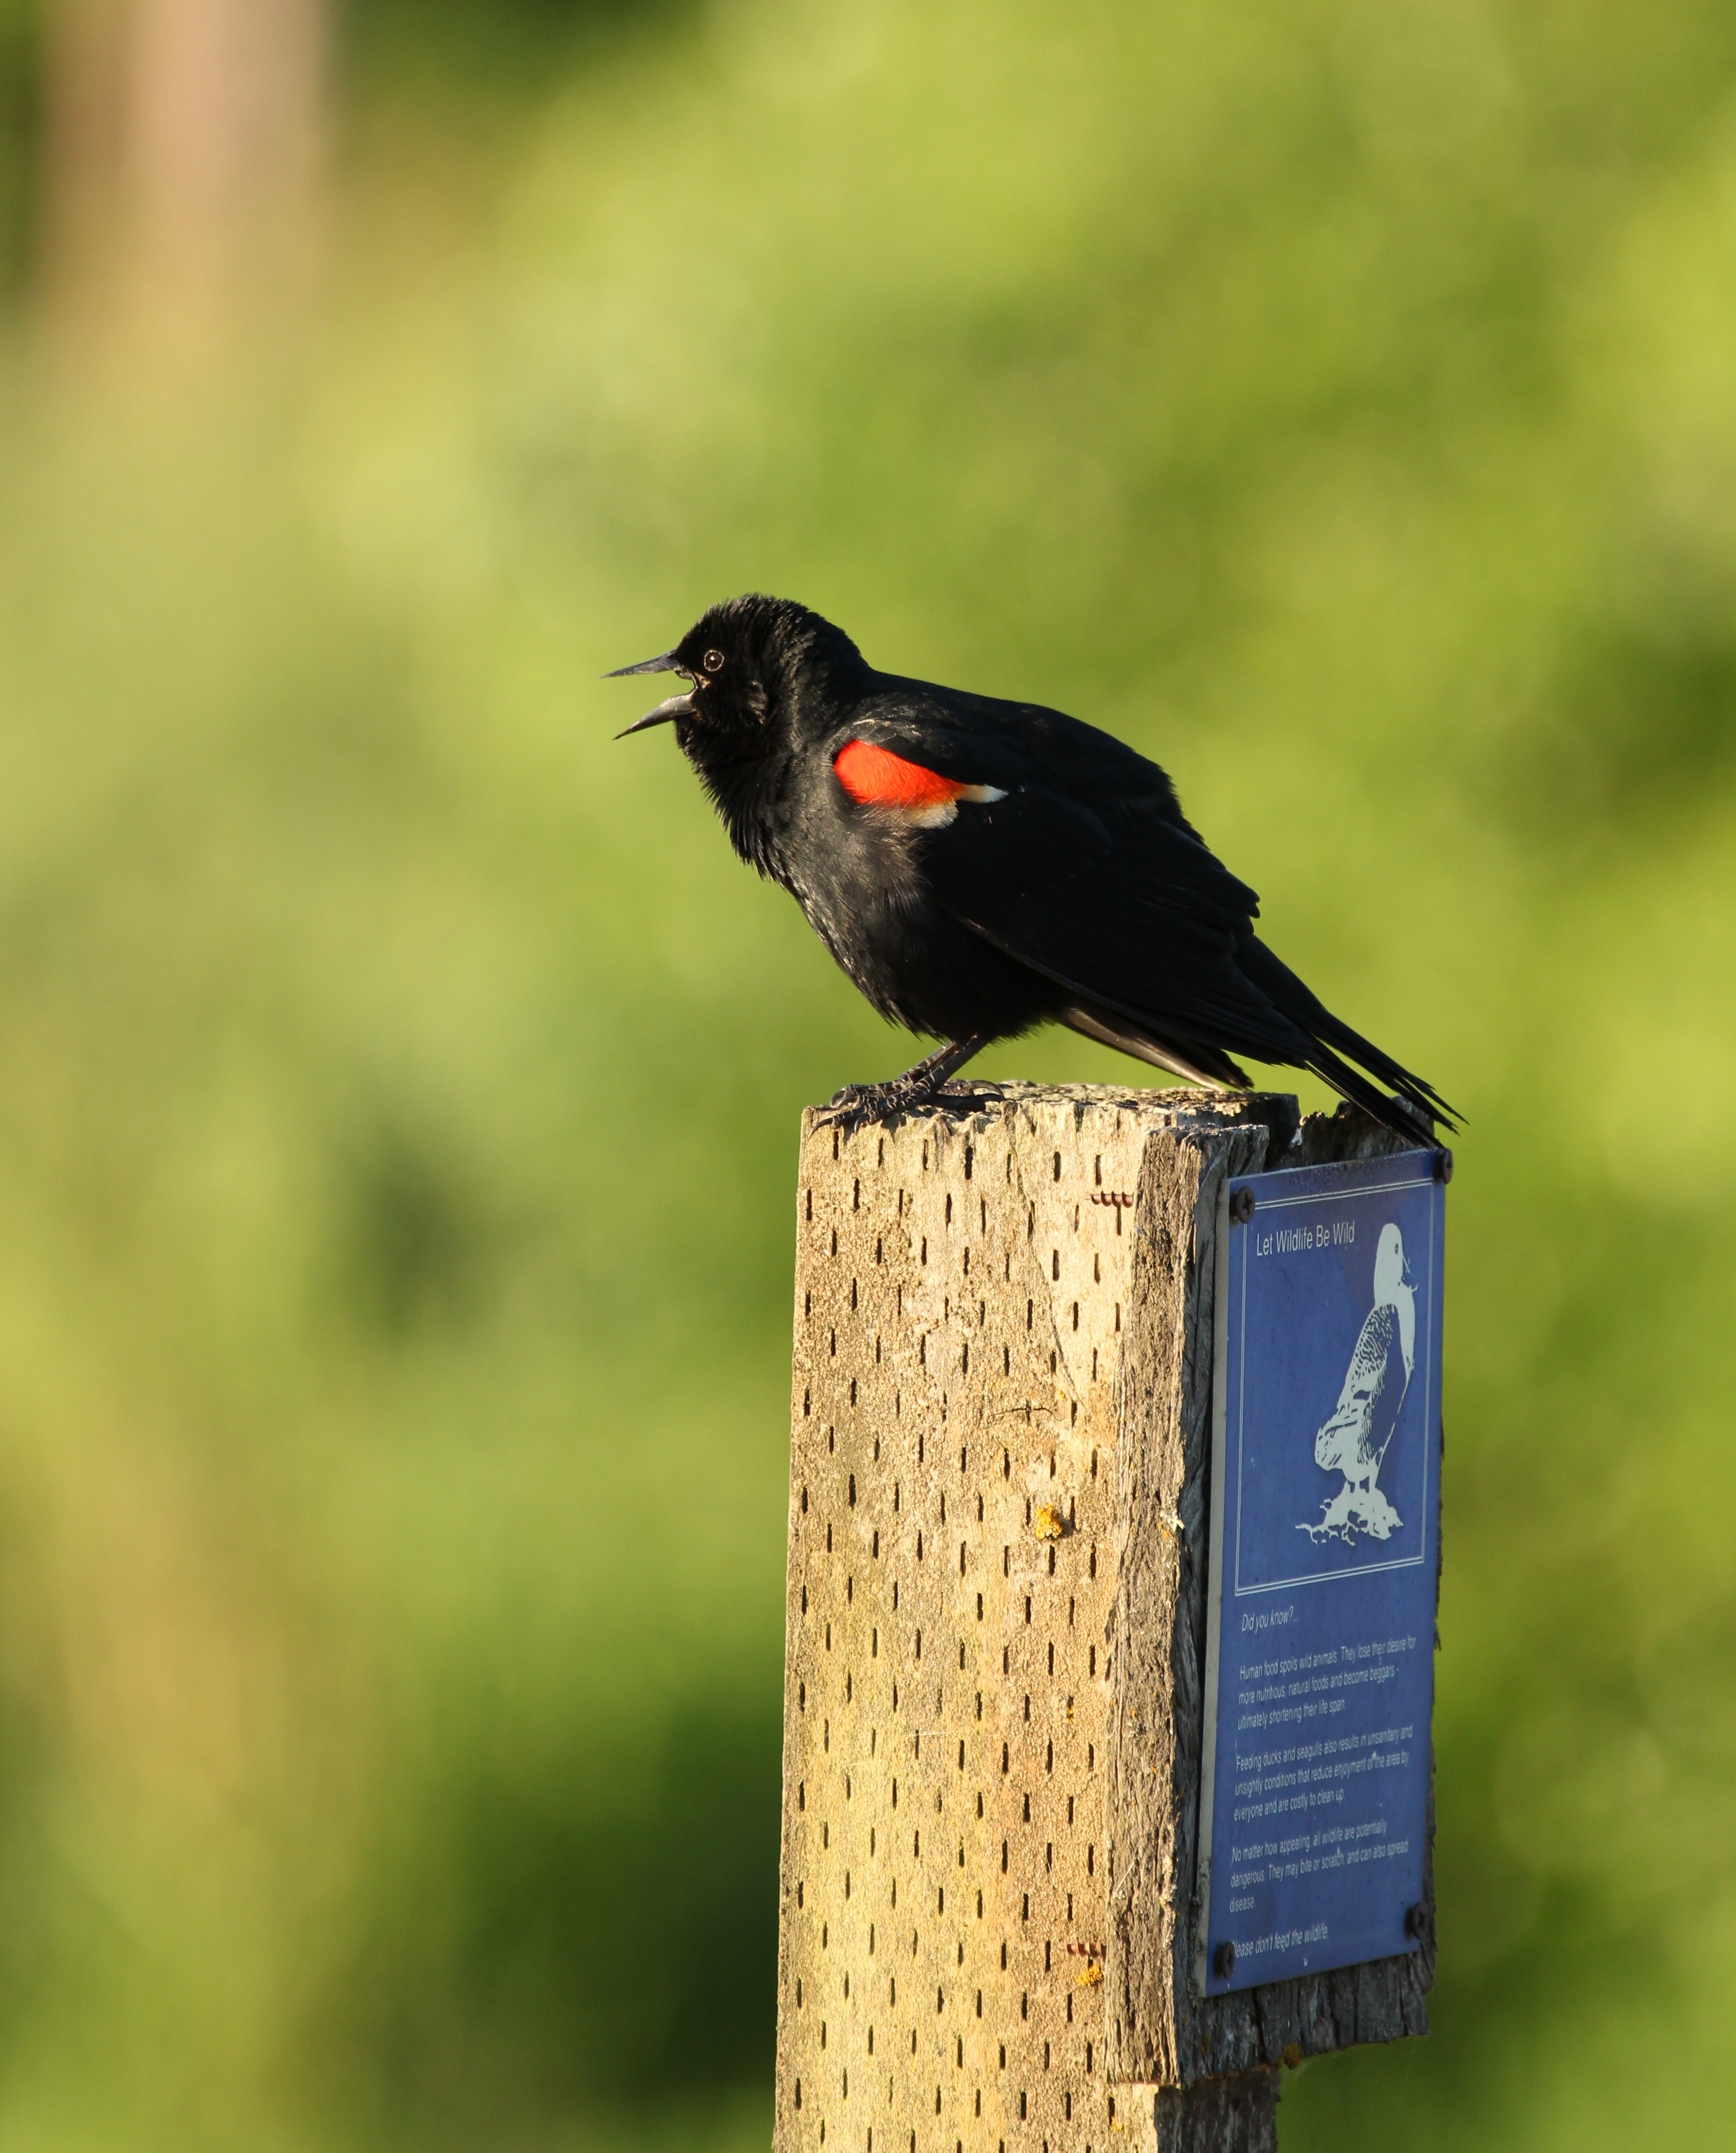 Redwing Blackbird at Hedges Marsh, Dana Entler